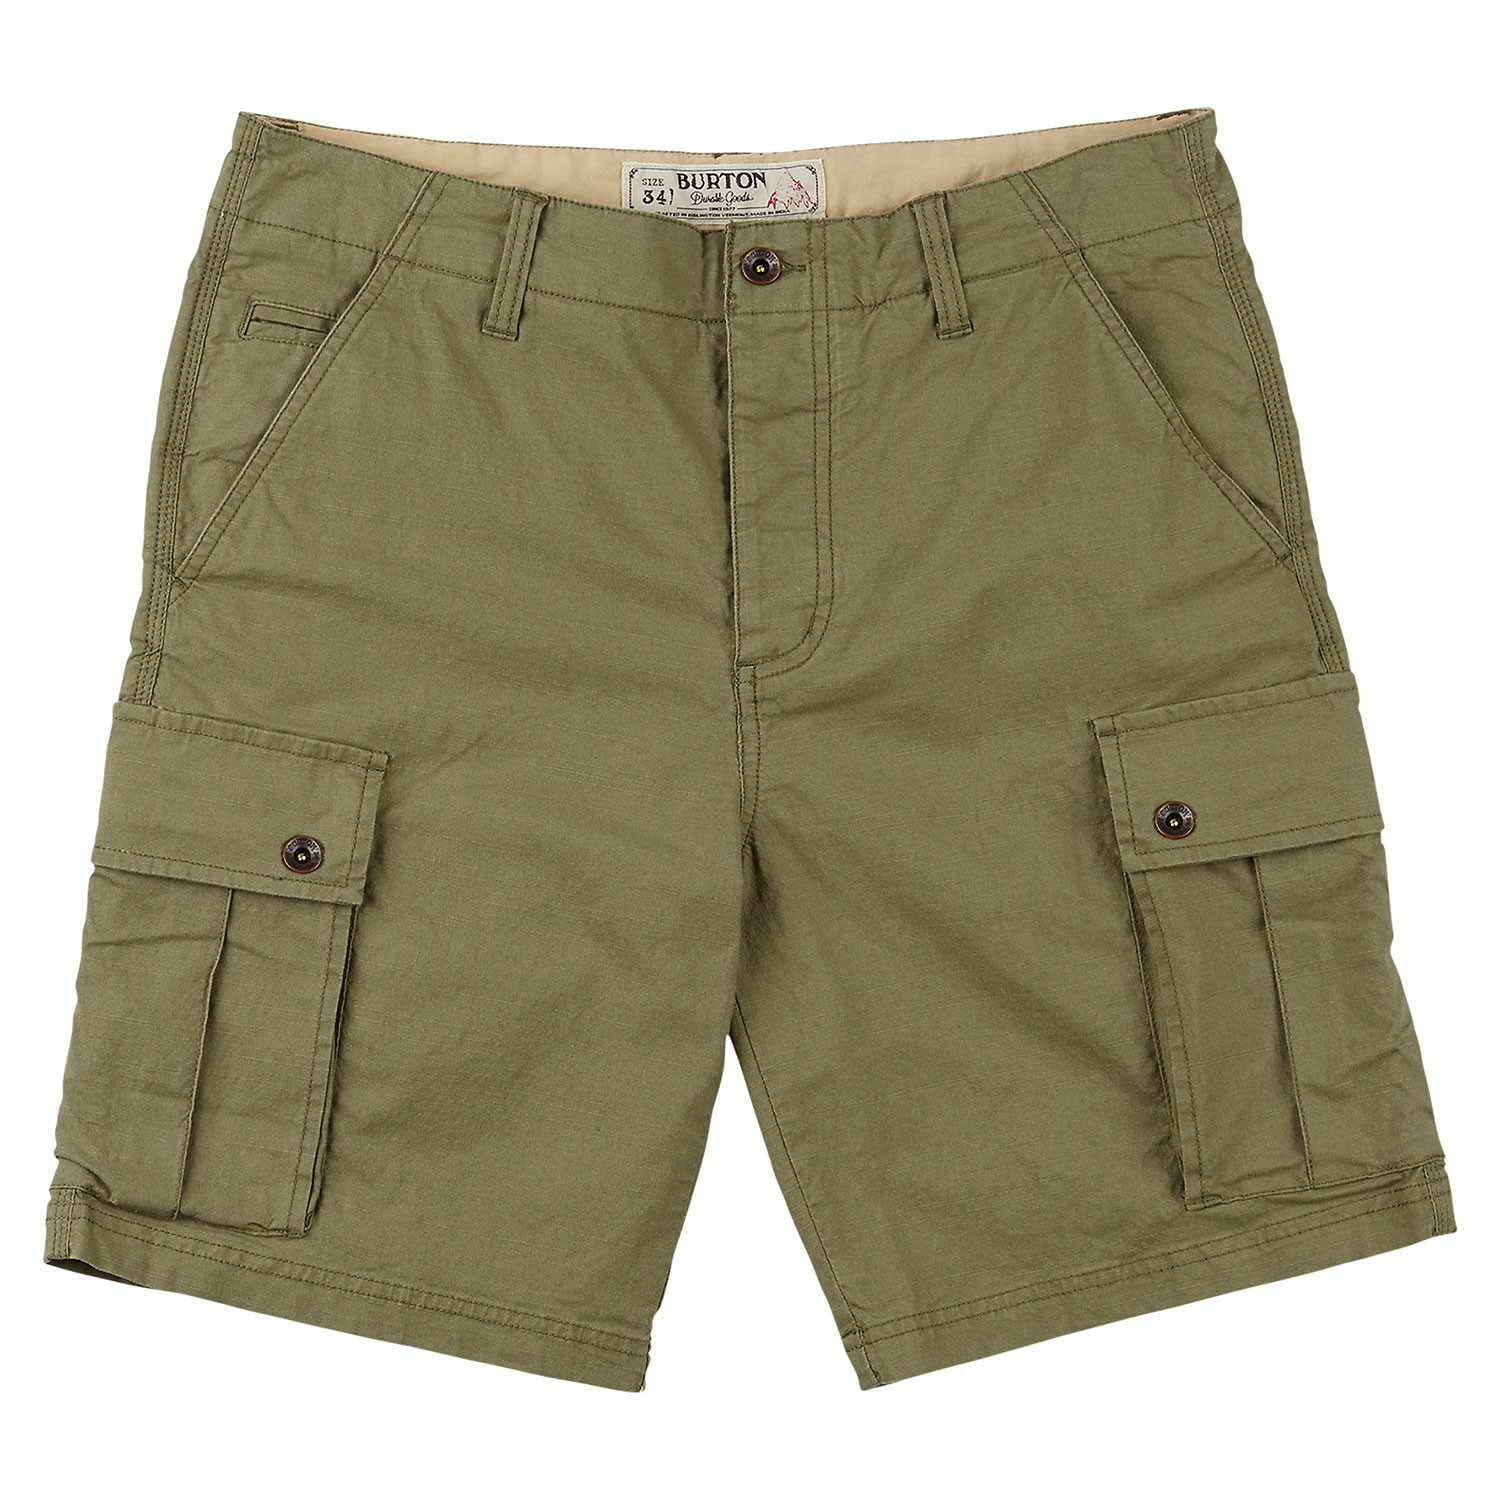 Kraťasy Burton Cargo Short dusty green